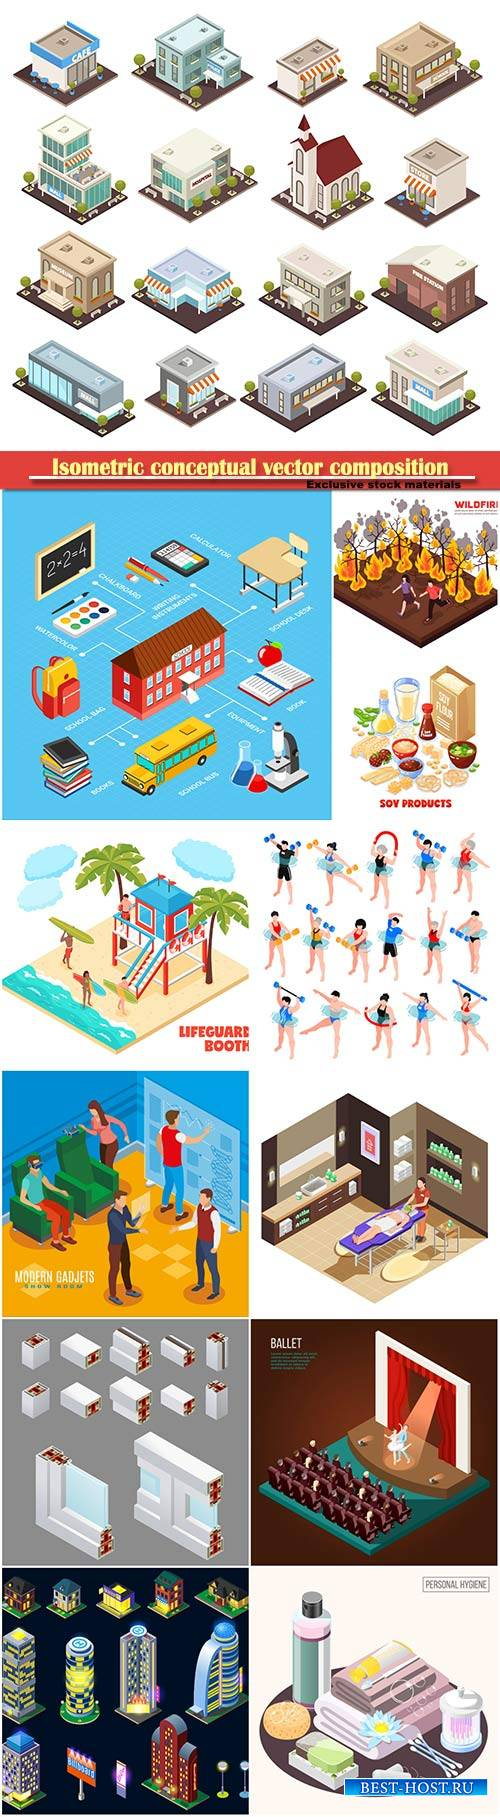 Isometric conceptual vector composition, infographics template # 22